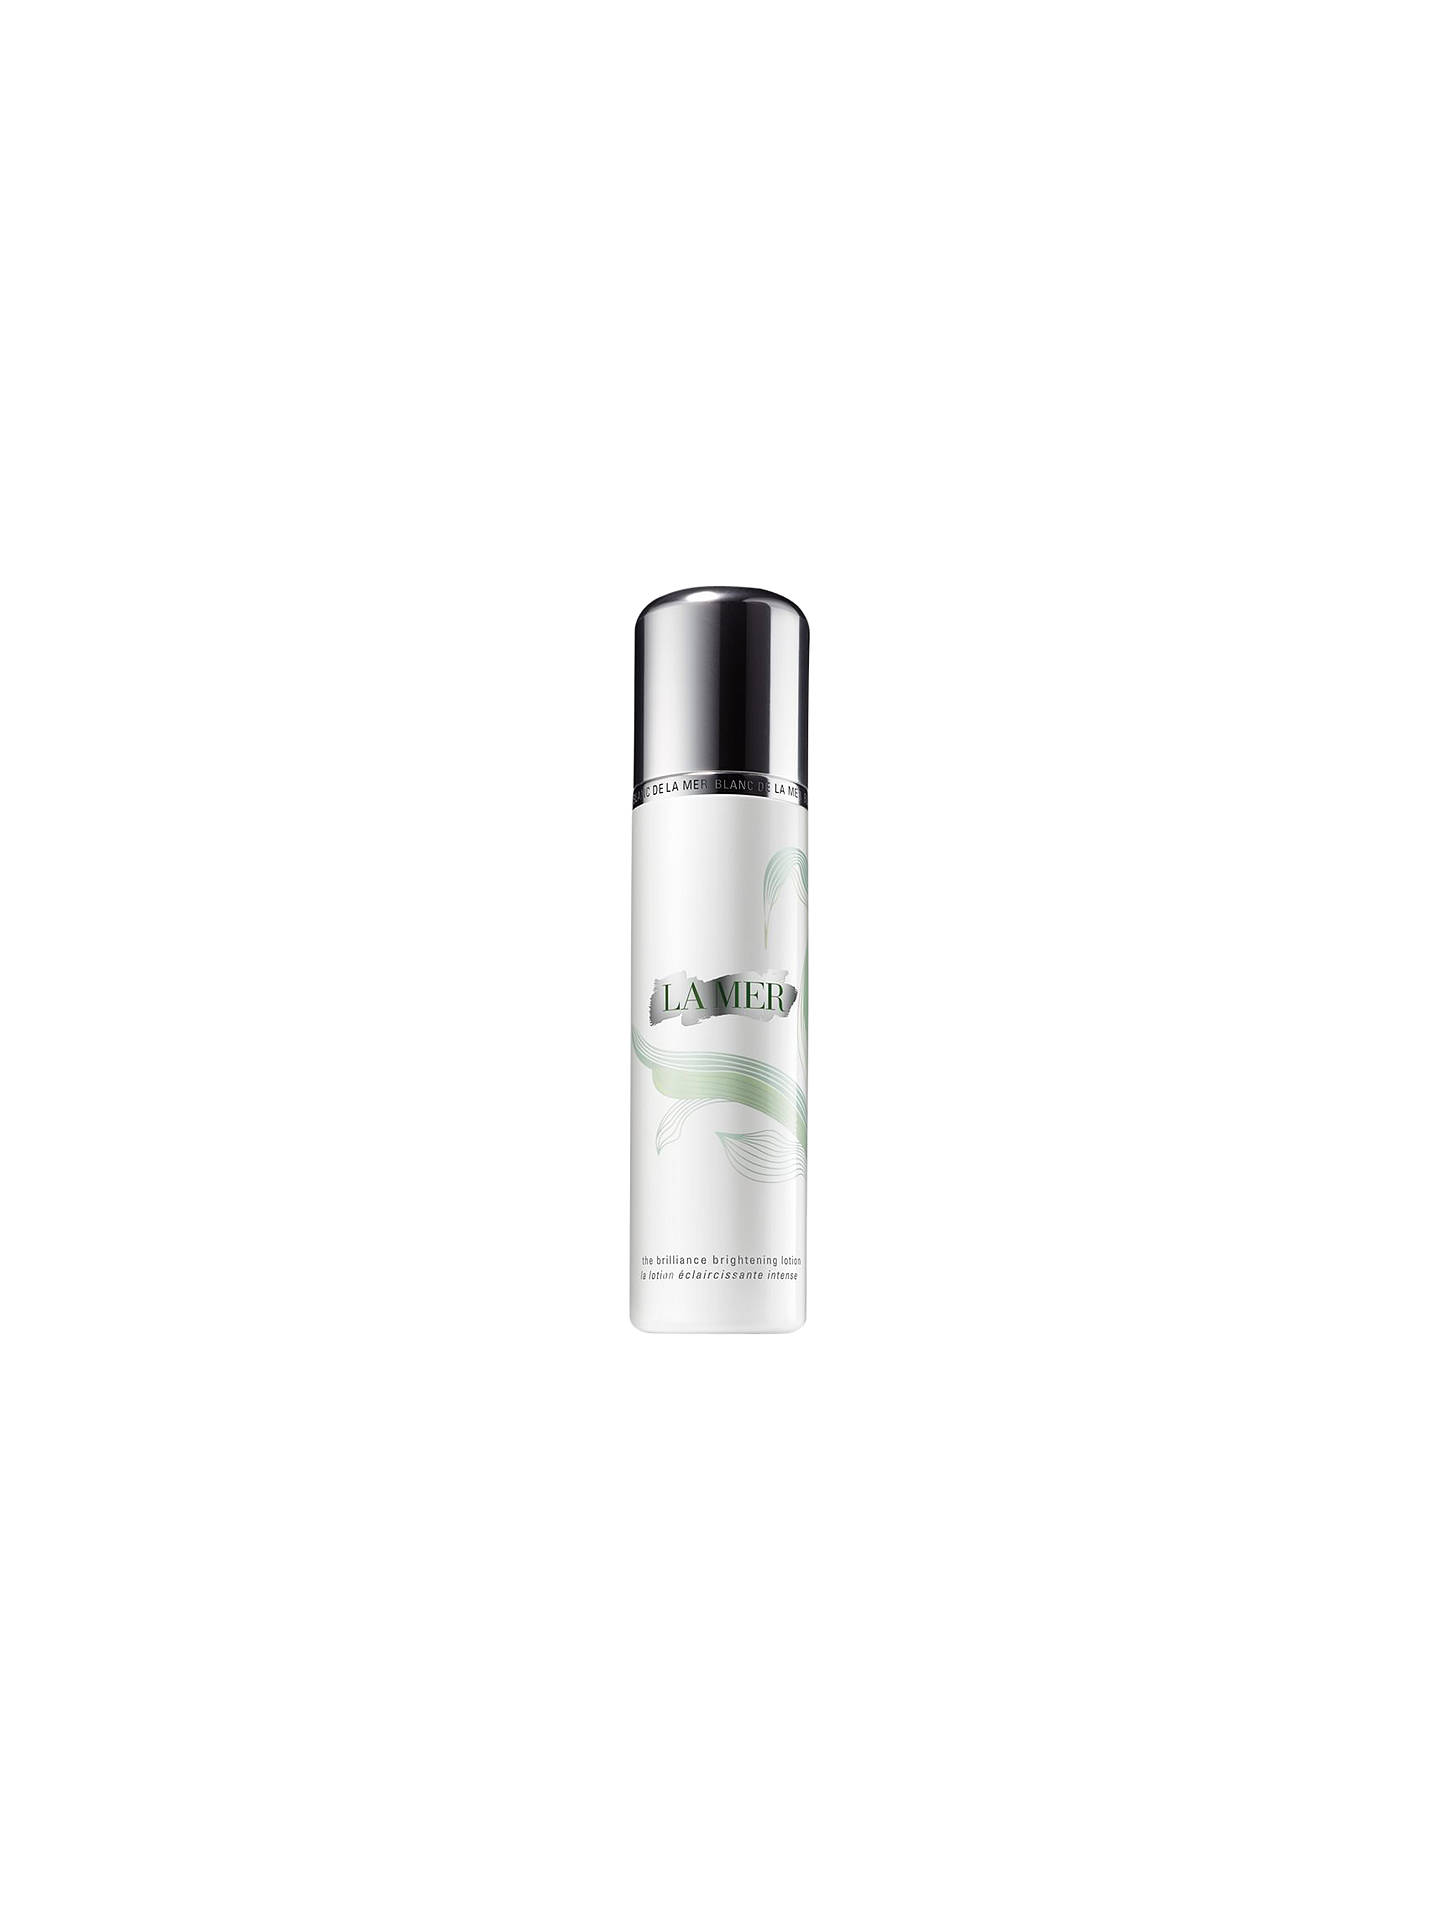 Buy La Mer The Brilliance Brightening Lotion, 200ml Online at johnlewis.com